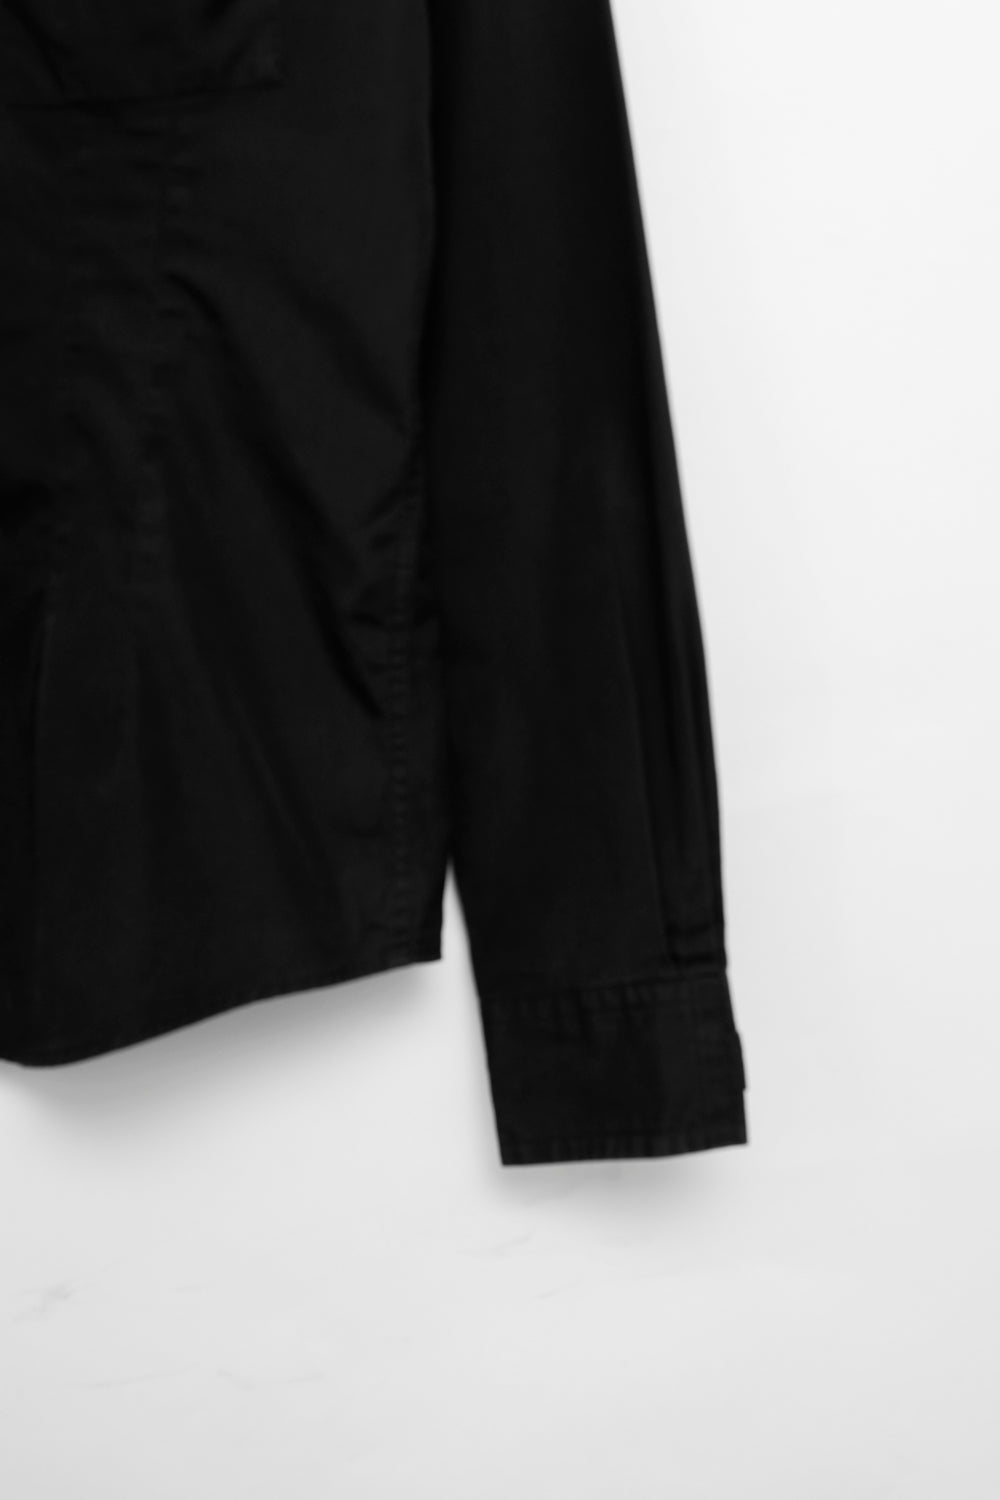 0001_ACNE BLACK SLIM COTTON BLOUSE